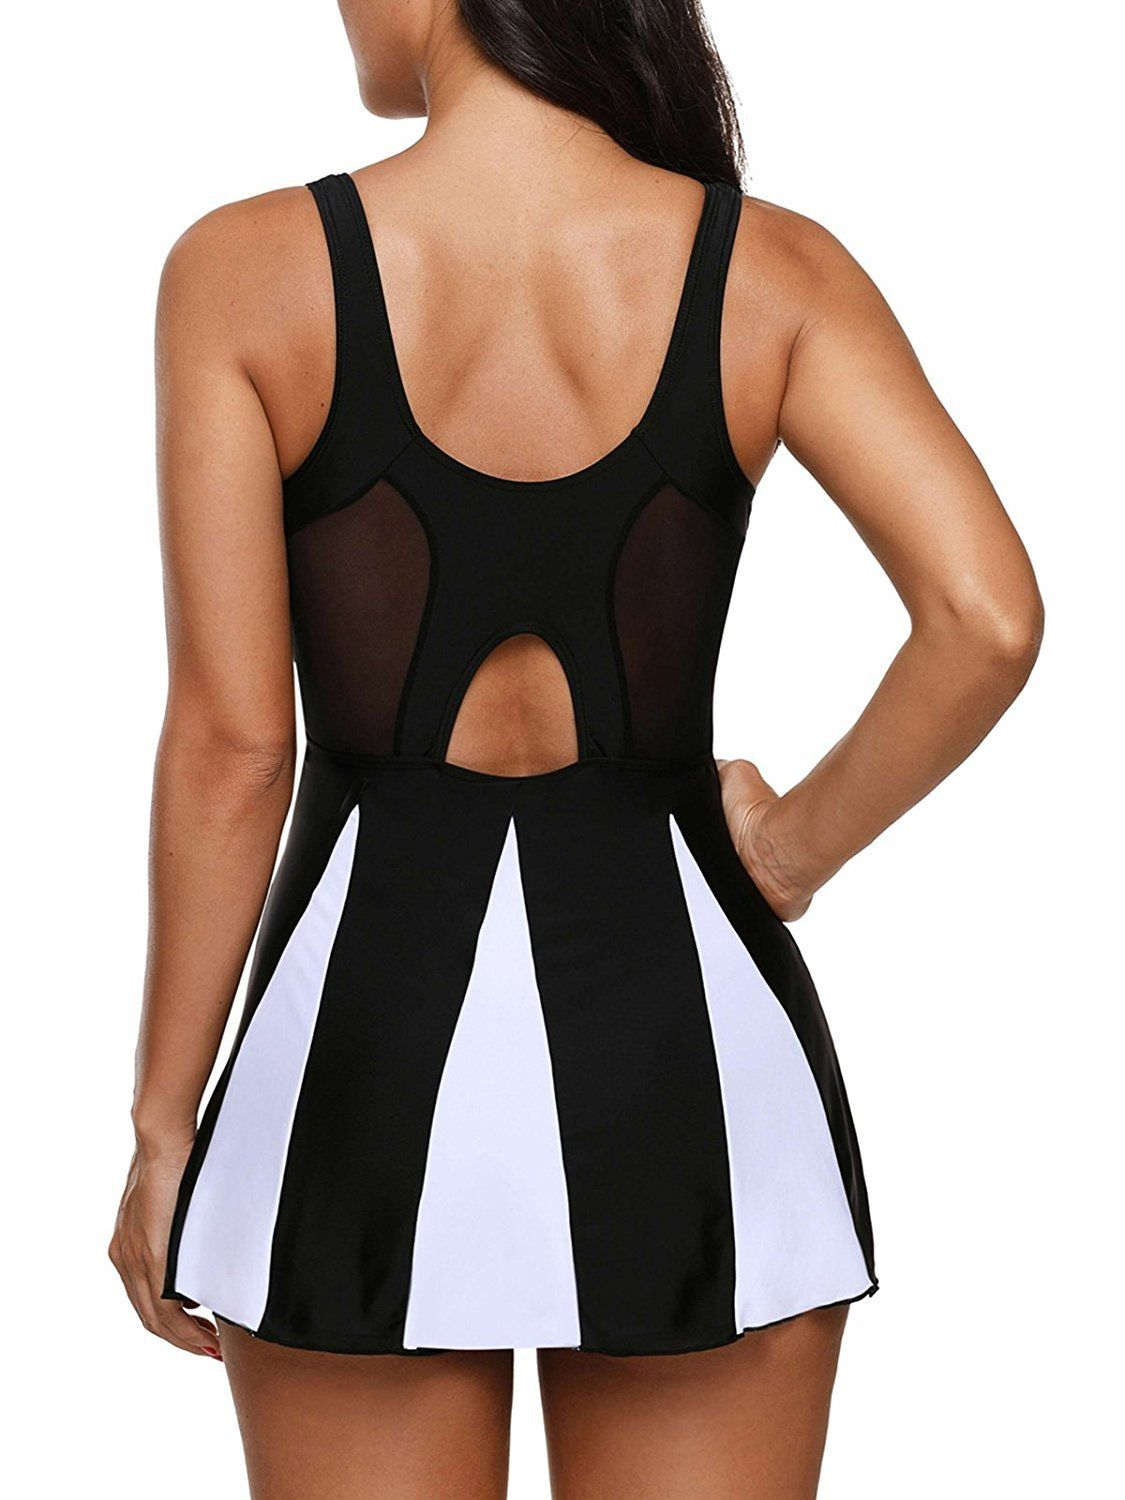 d4ca439d75497 Women One Piece Swimdress Tummy Control Slimming Skirt Bathing Suit Dress  *** For more information, visit image link. (Note:Amazon affiliate link)